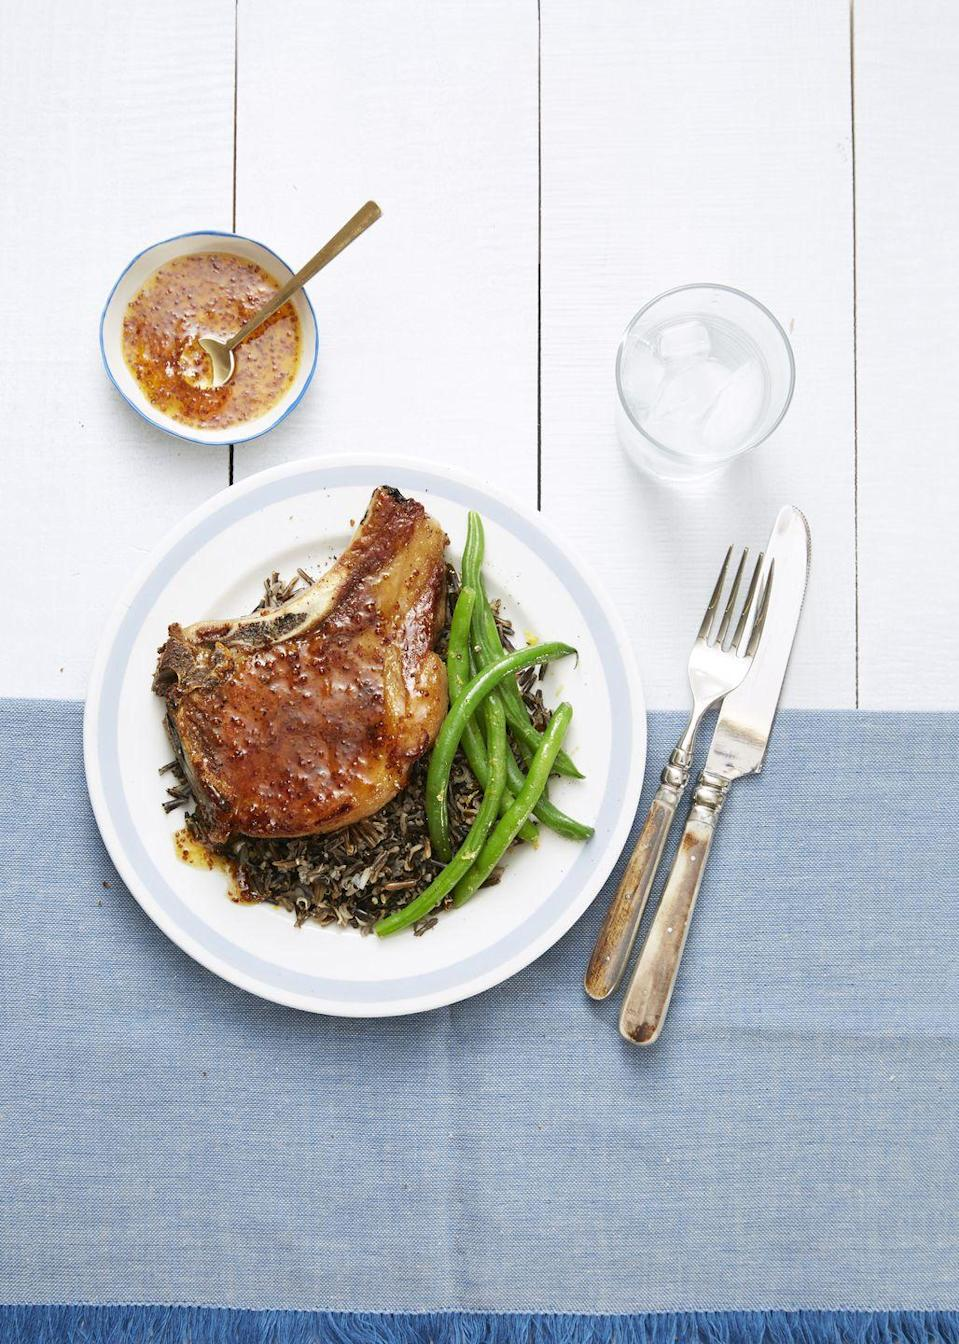 "<p>Stock up on apricot jam and grainy mustard, so you're always ready to whip up this sweet 'n' sticky glaze.</p><p><a href=""https://www.goodhousekeeping.com/food-recipes/easy/a34147/pork-chops-with-mustard-apricot-sauce/"" rel=""nofollow noopener"" target=""_blank"" data-ylk=""slk:Get the recipe for Pork Chops with Mustard-Apricot Sauce »"" class=""link rapid-noclick-resp""><em>Get the recipe for Pork Chops with Mustard-Apricot Sauce »</em></a></p>"